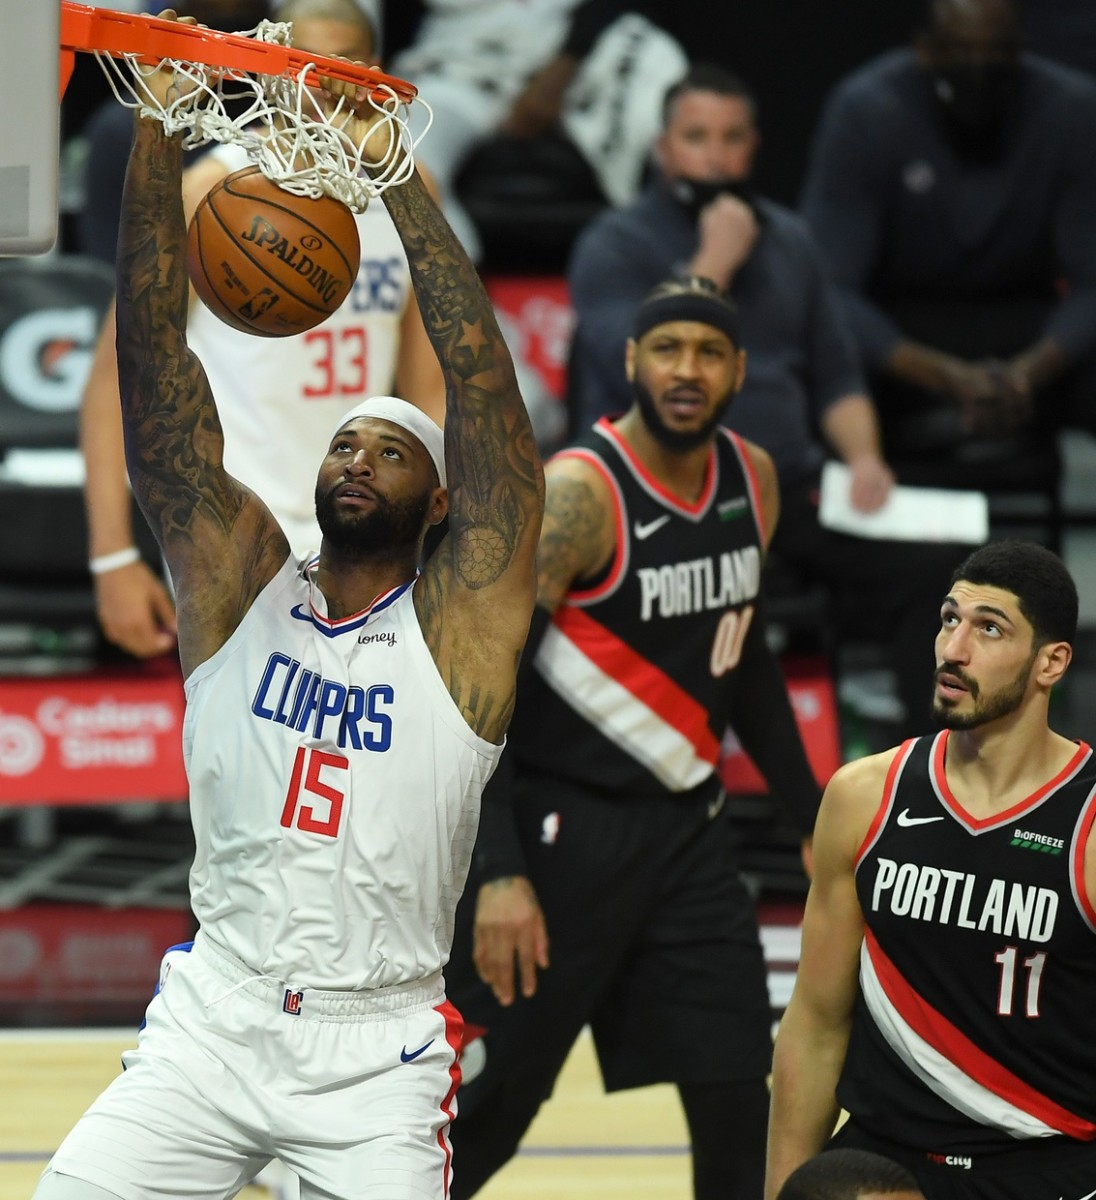 Tyronn Lue: DeMarcus Cousins Can Make Huge Impact With LA Clippers